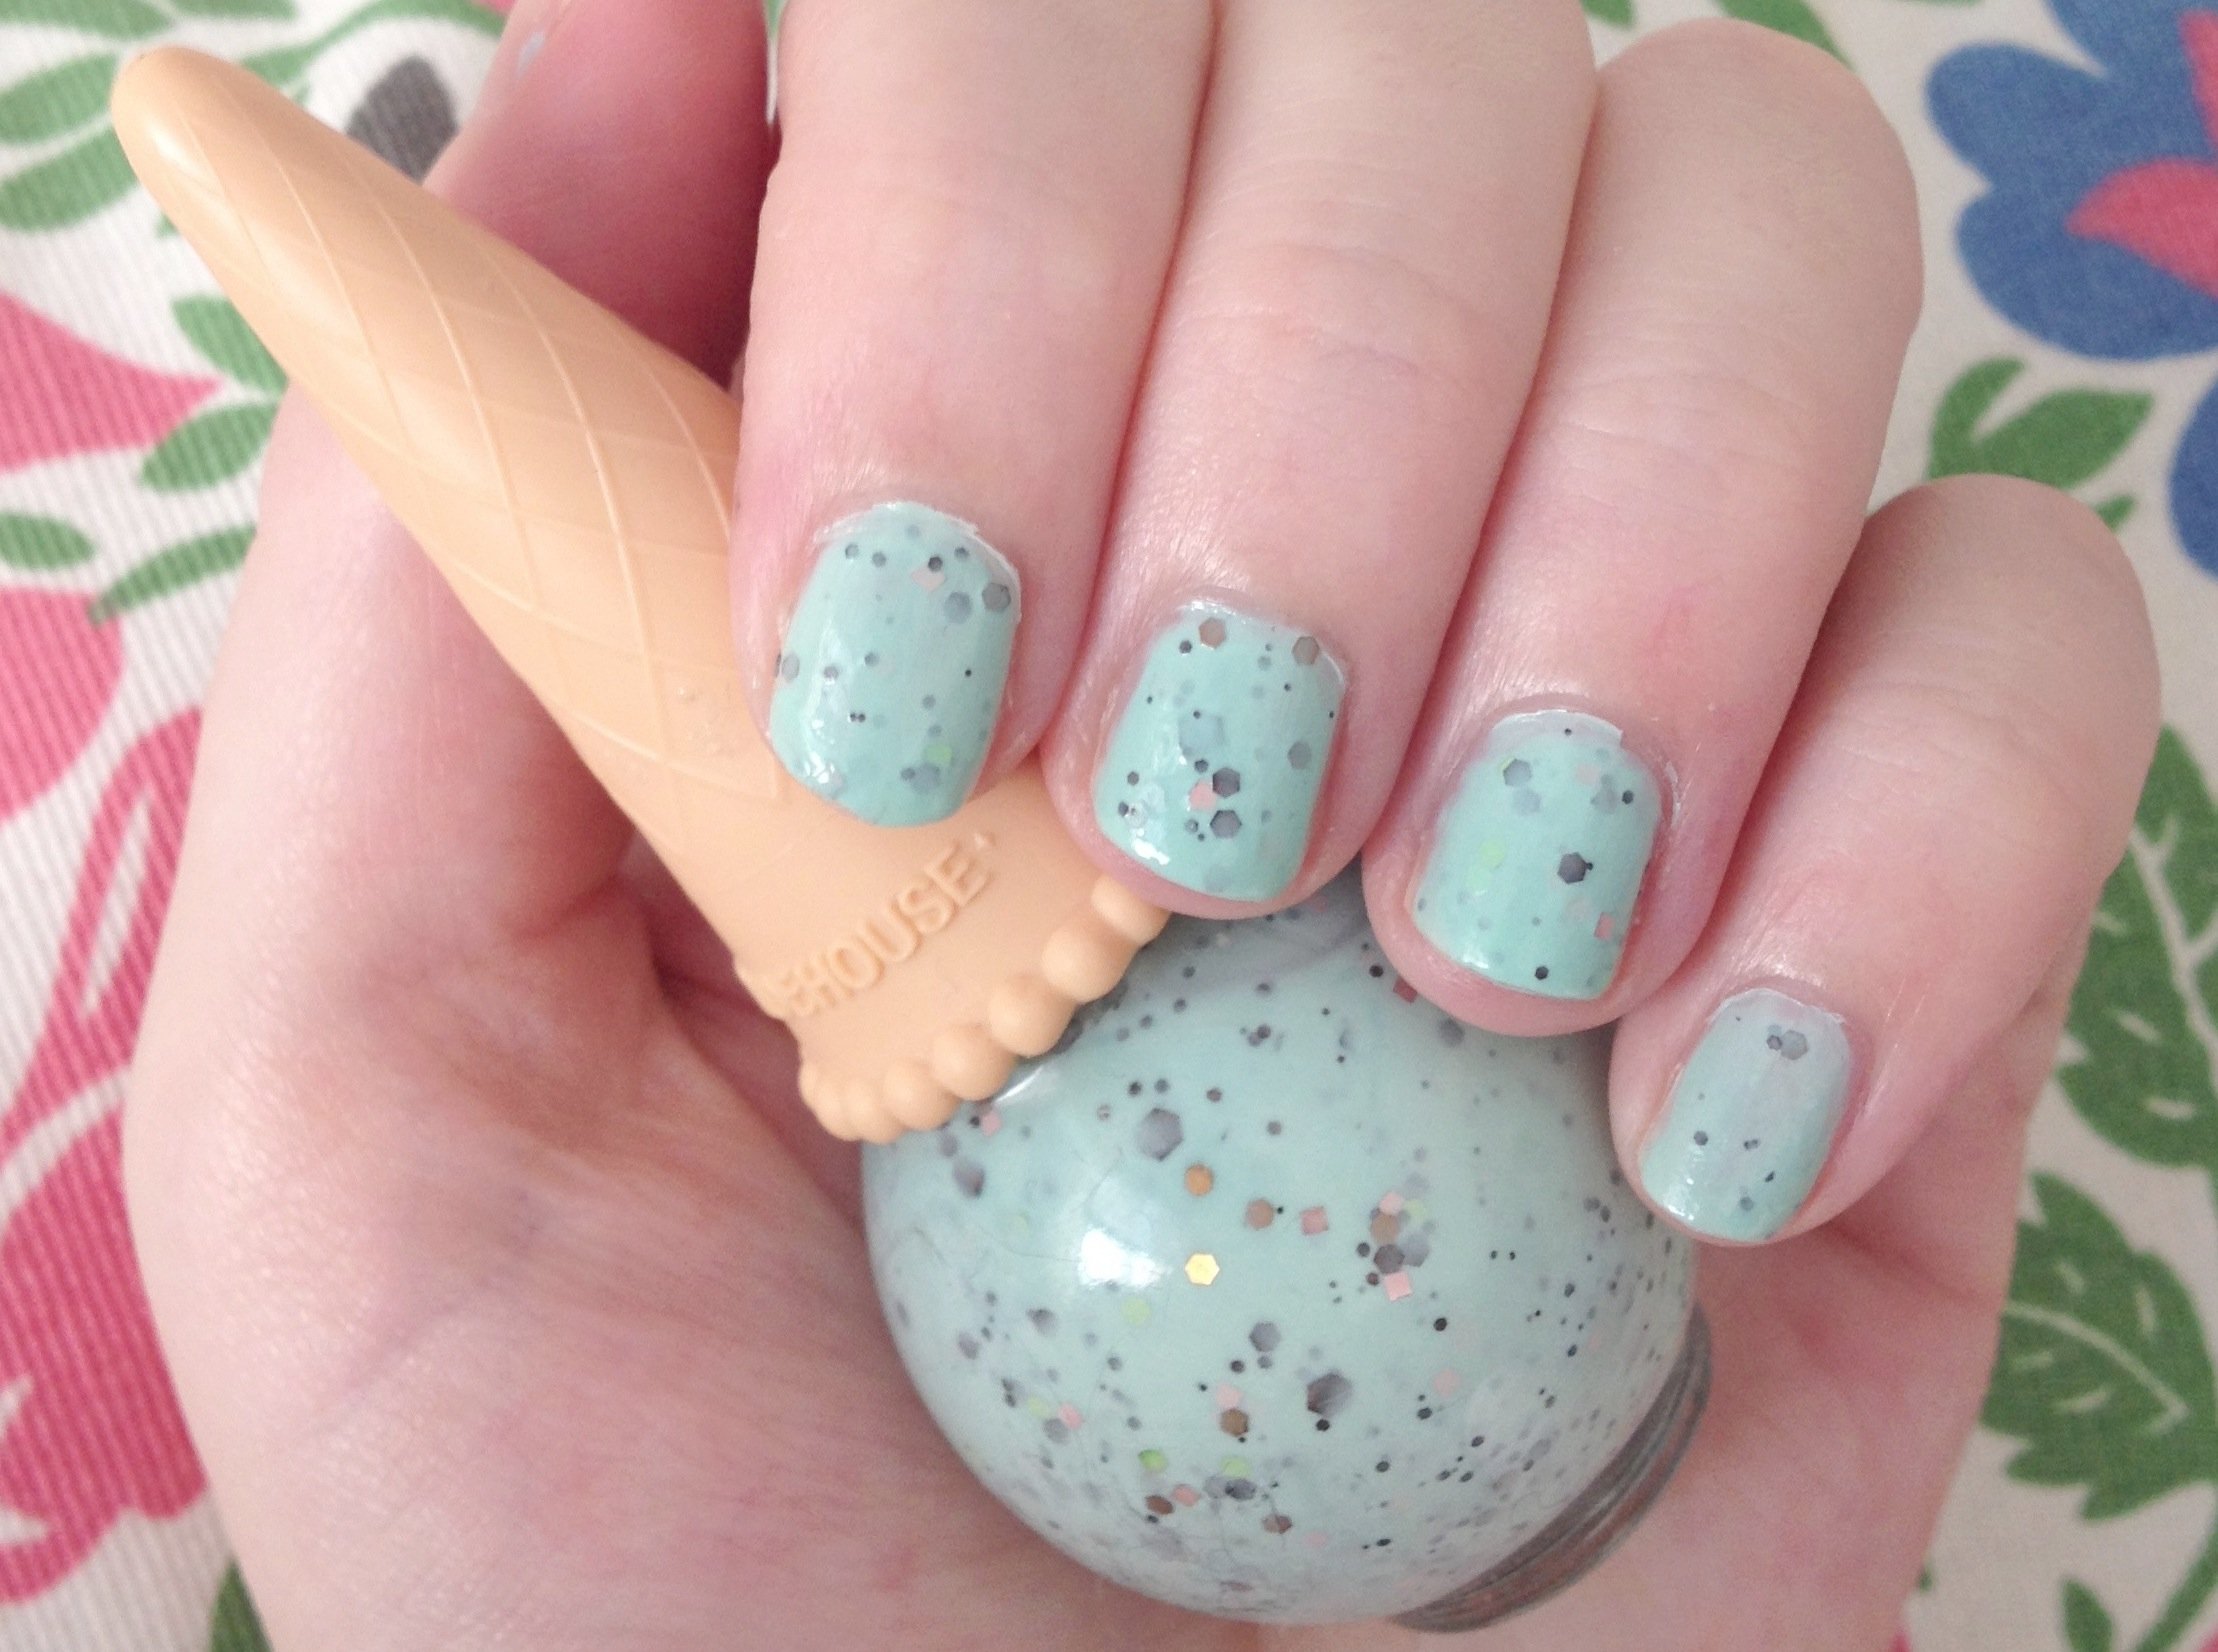 Etude House Mint Choco Chip nail polish review | Through The Looking ...